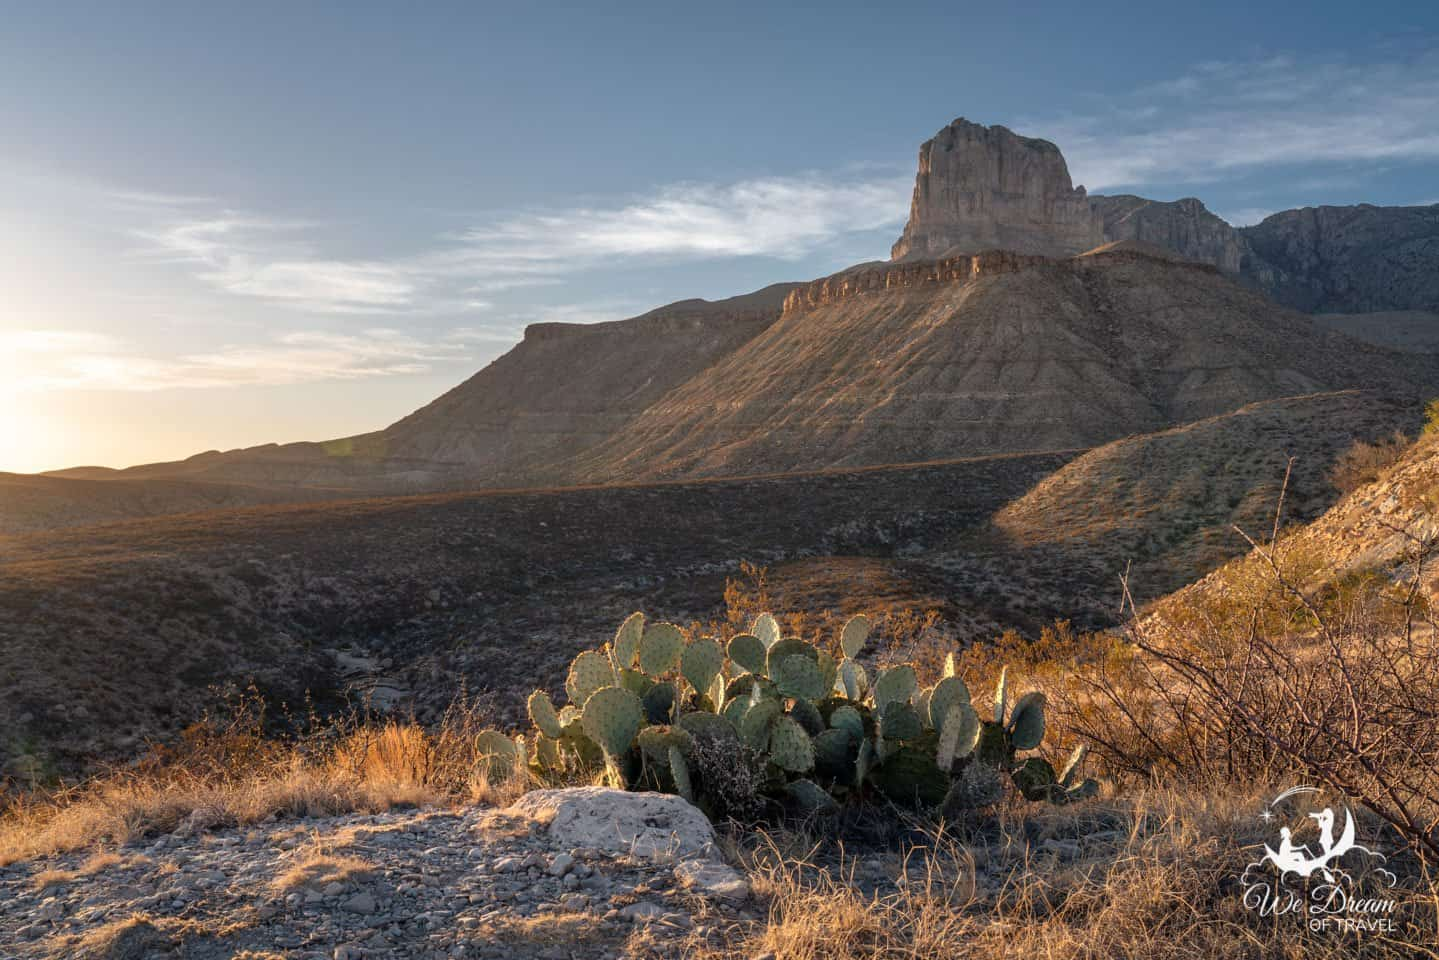 While technically outside the park, El Capitan Lookout is my favorite place to photograph sunrise and sunset near Guadalupe Mountains NP.